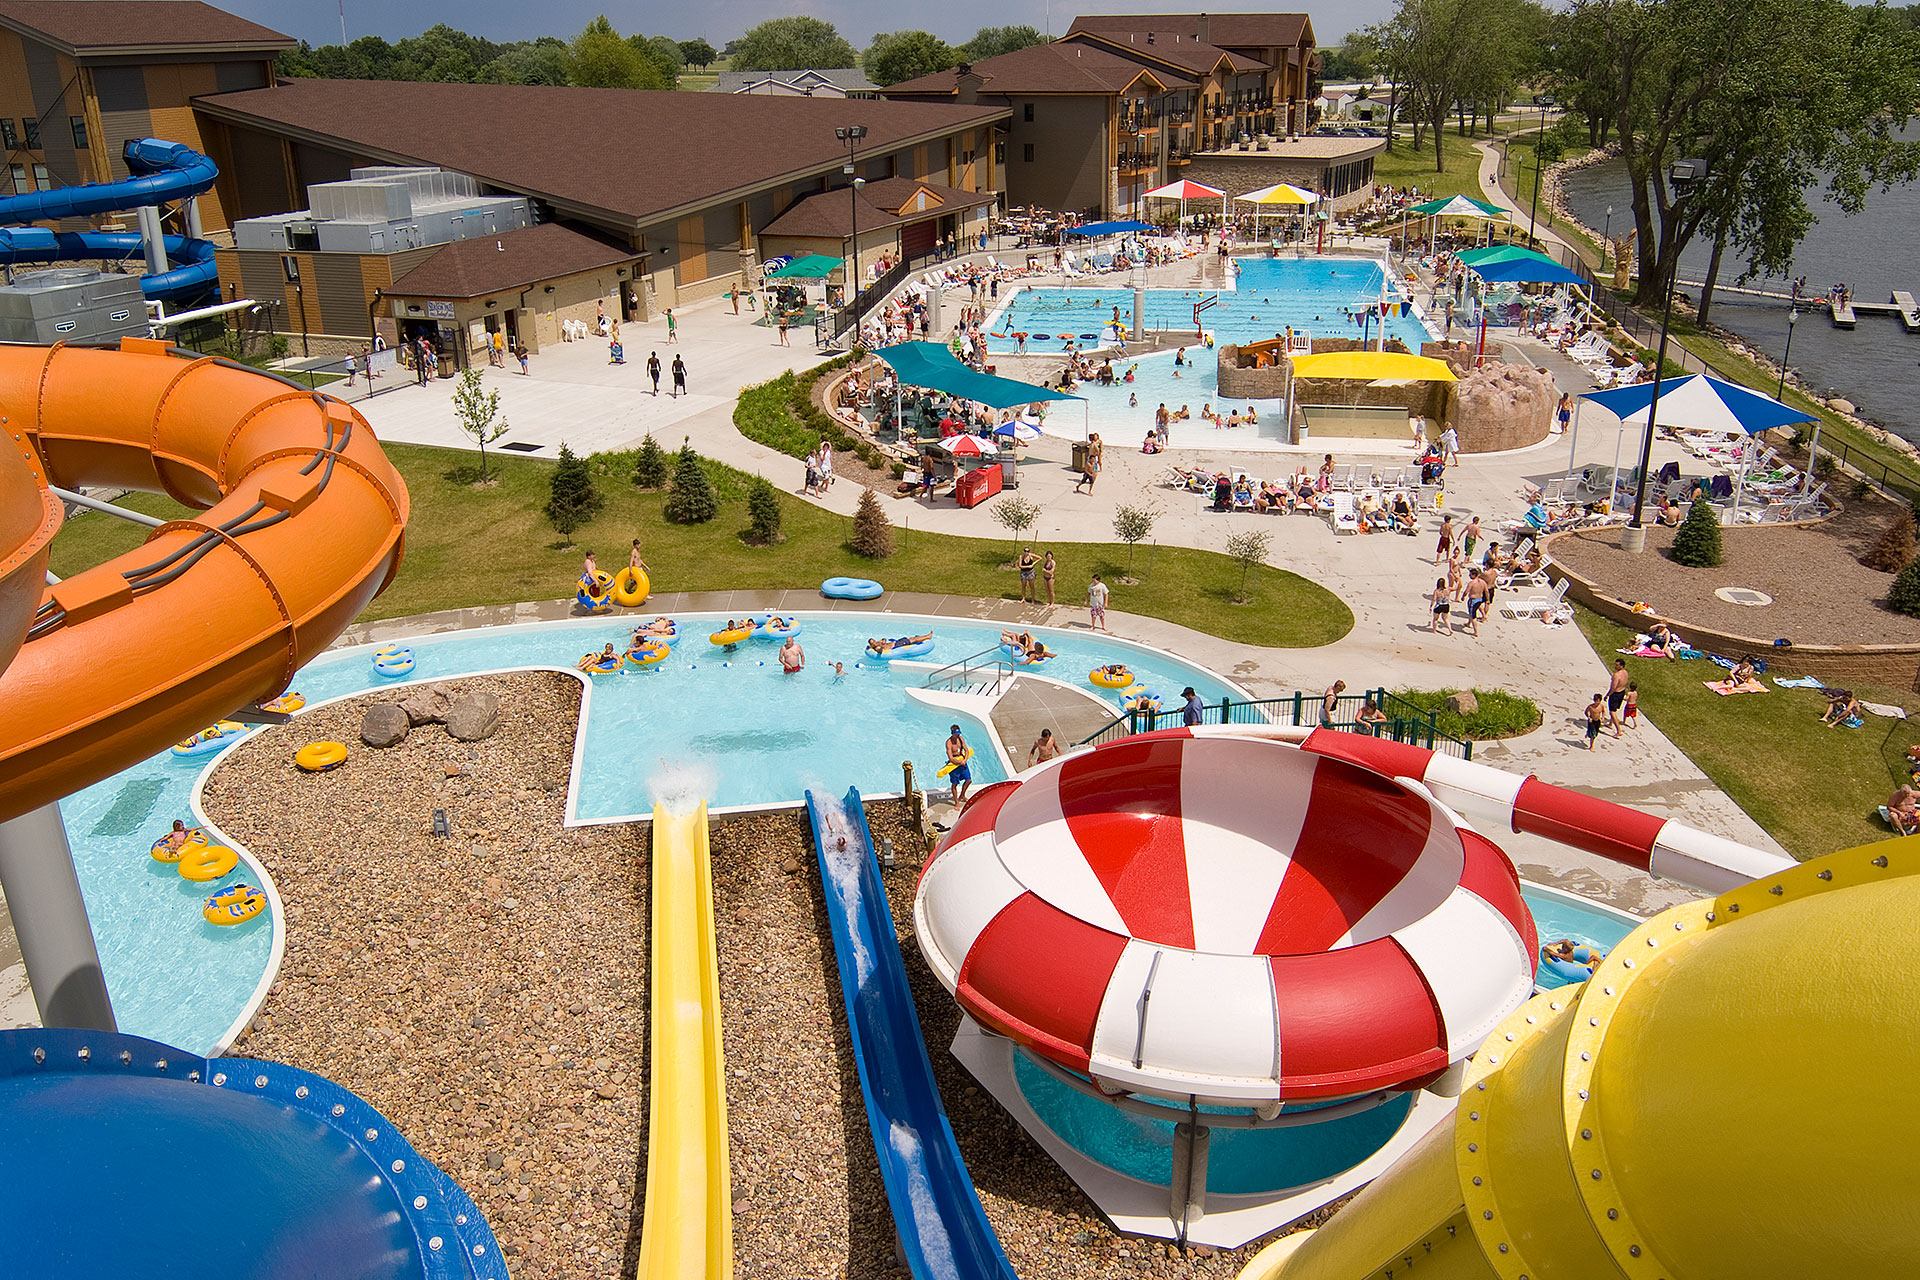 Outdoor Water Park at King's Pointe Resort in Storm Lake, Iowa; Courtesy of King's Pointe Resort